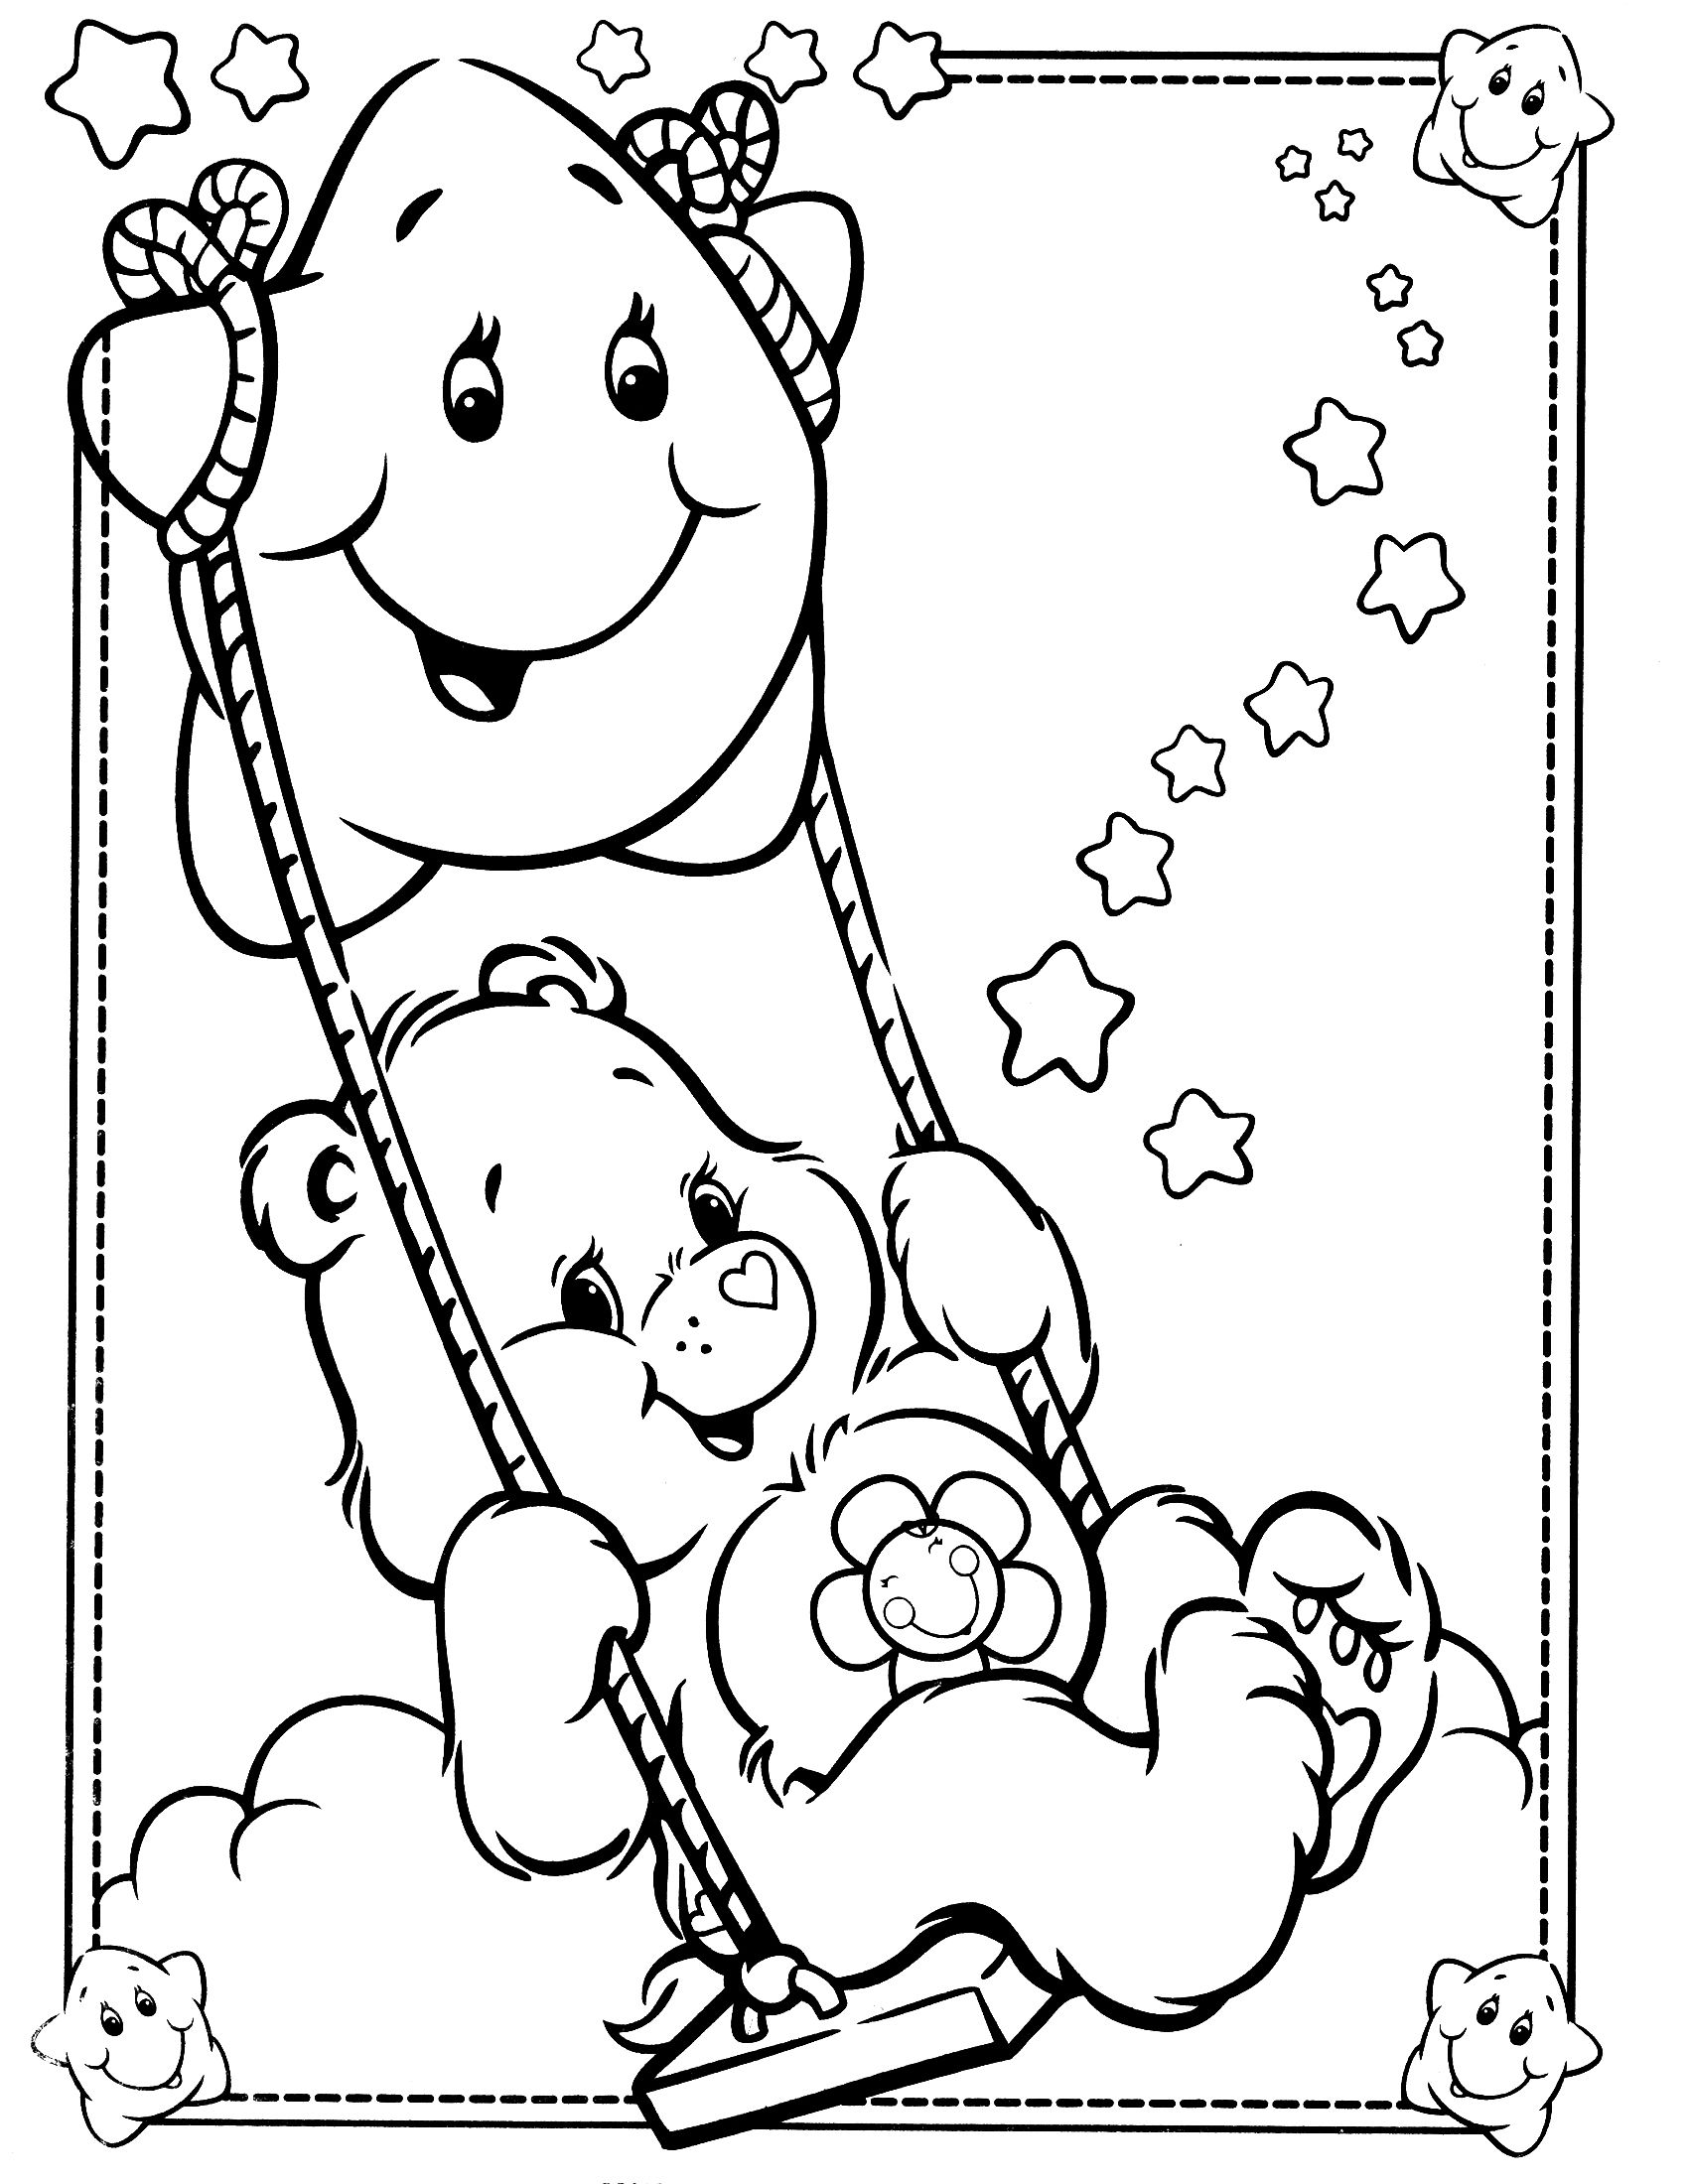 care bears coloring page - Bears Coloring Pages 2